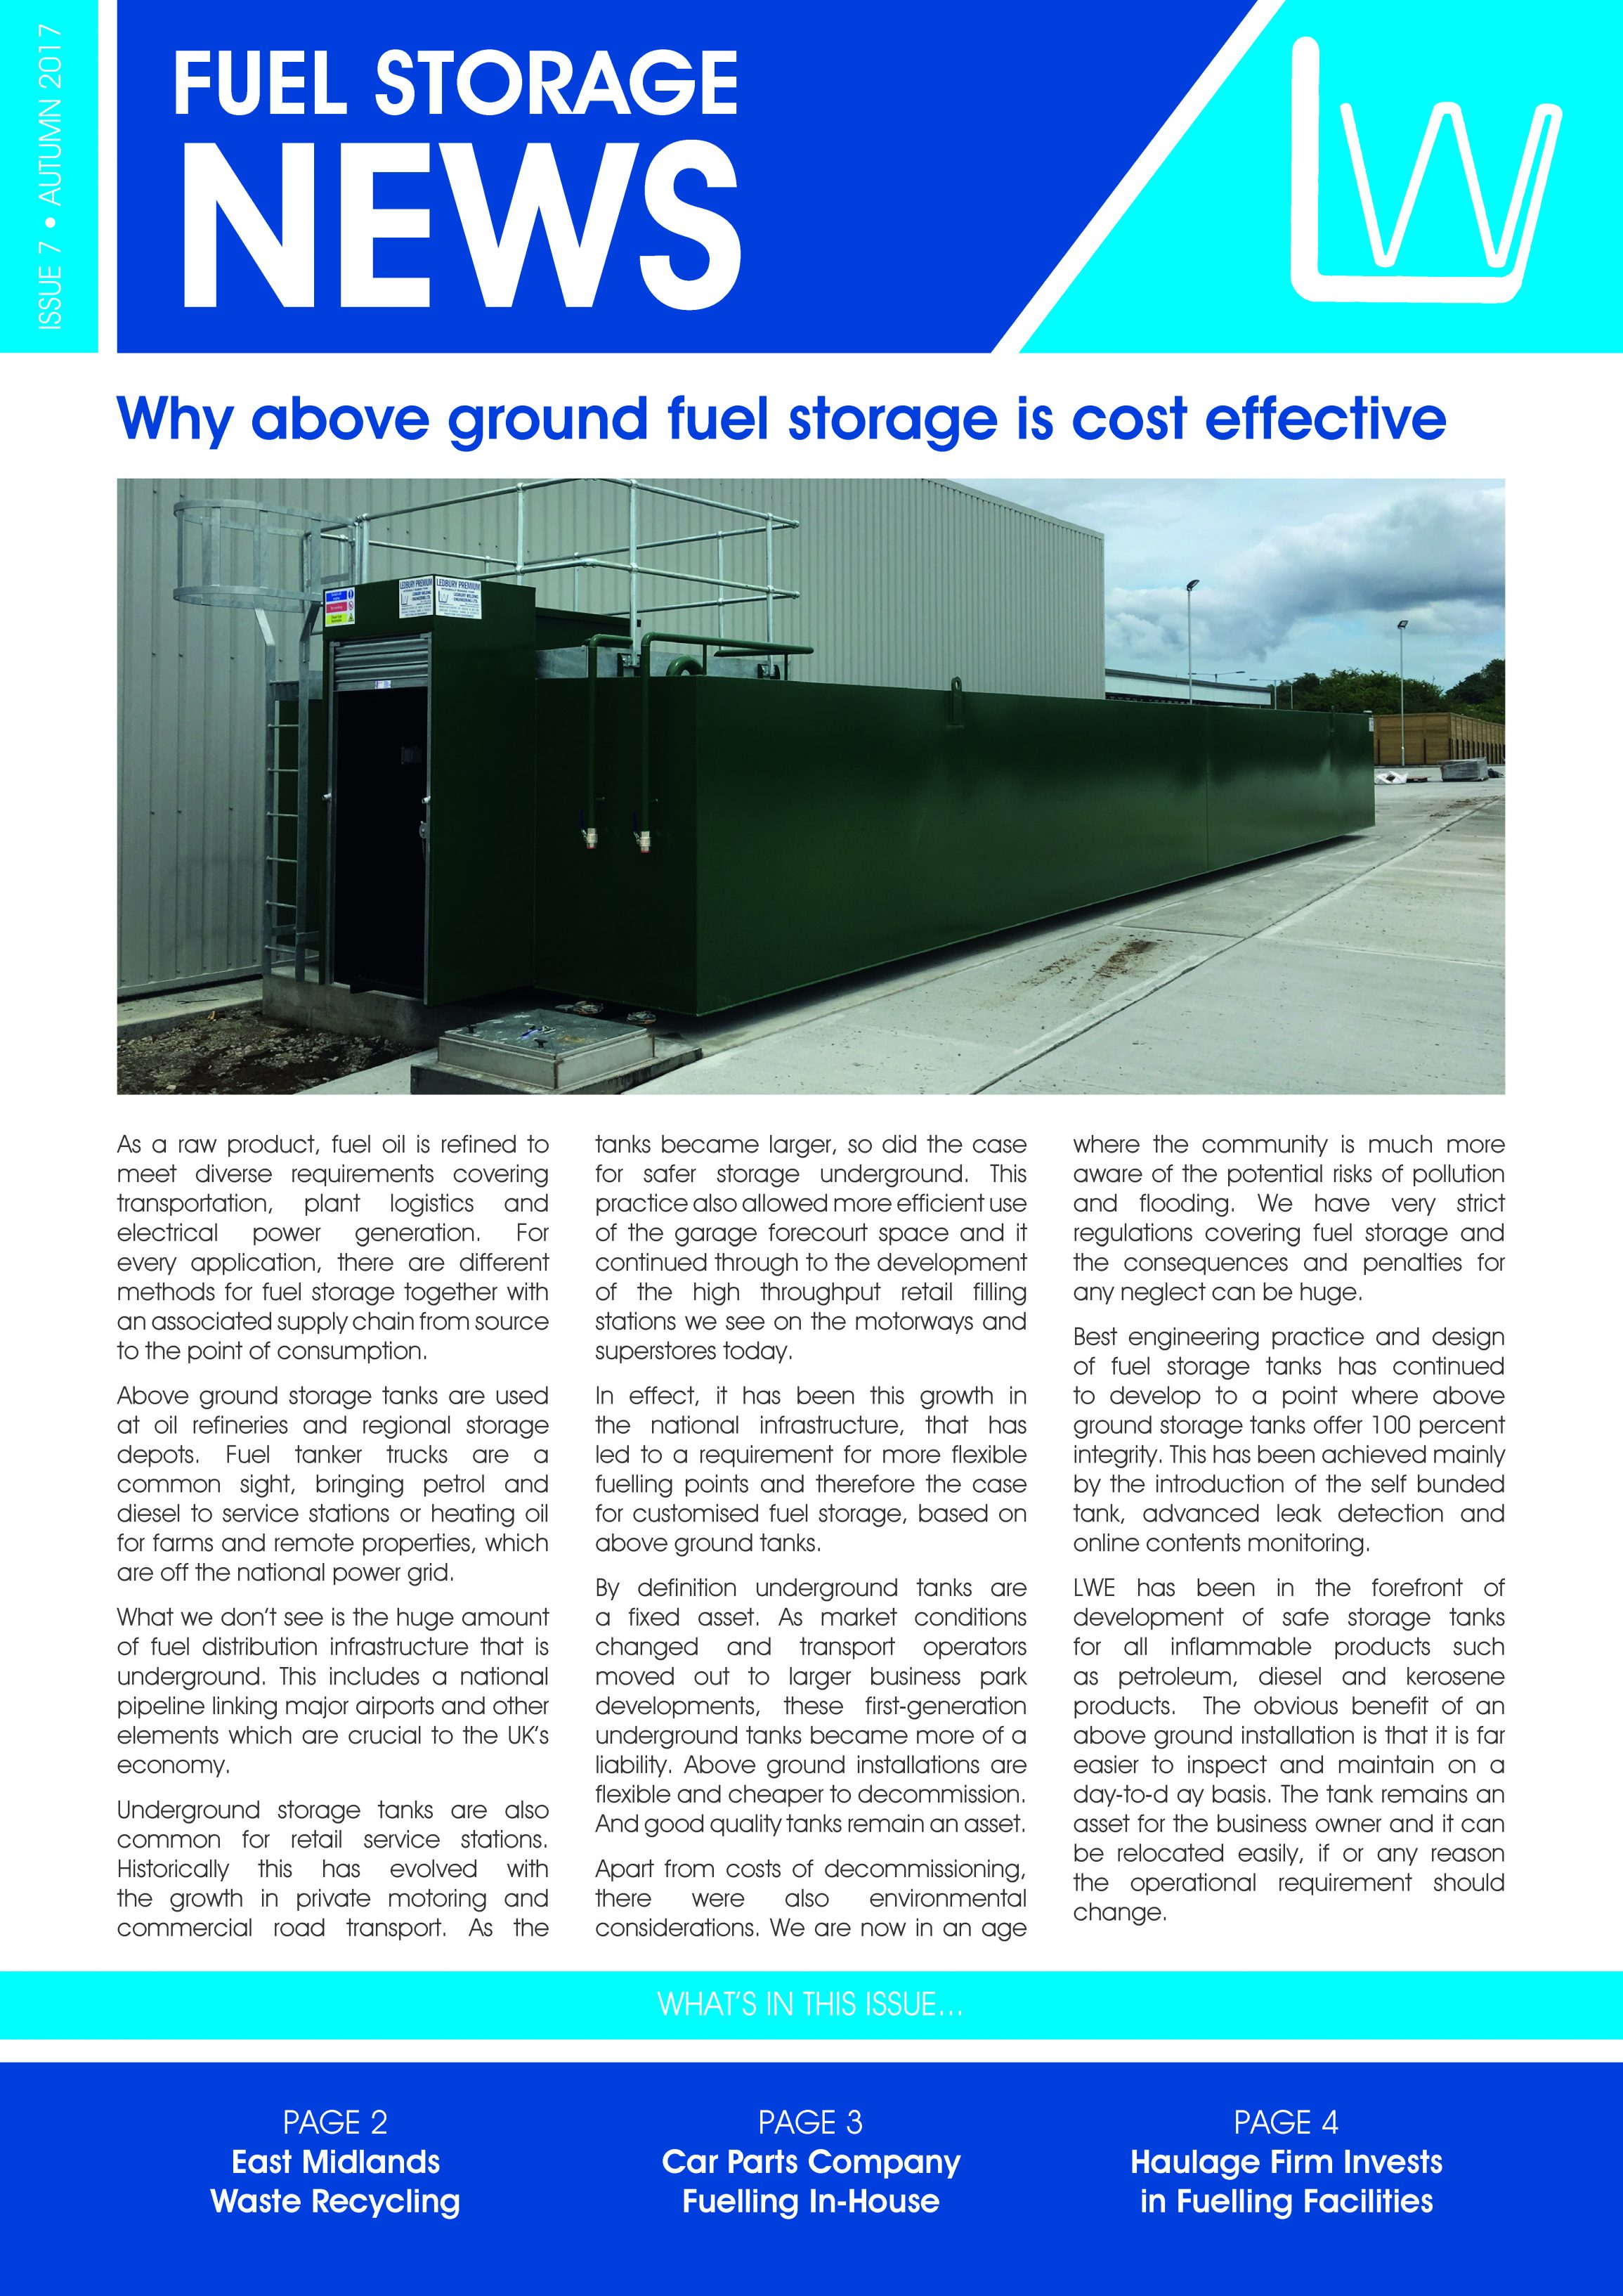 Ledbury Welding Fuel Storage news - Autumn 2017